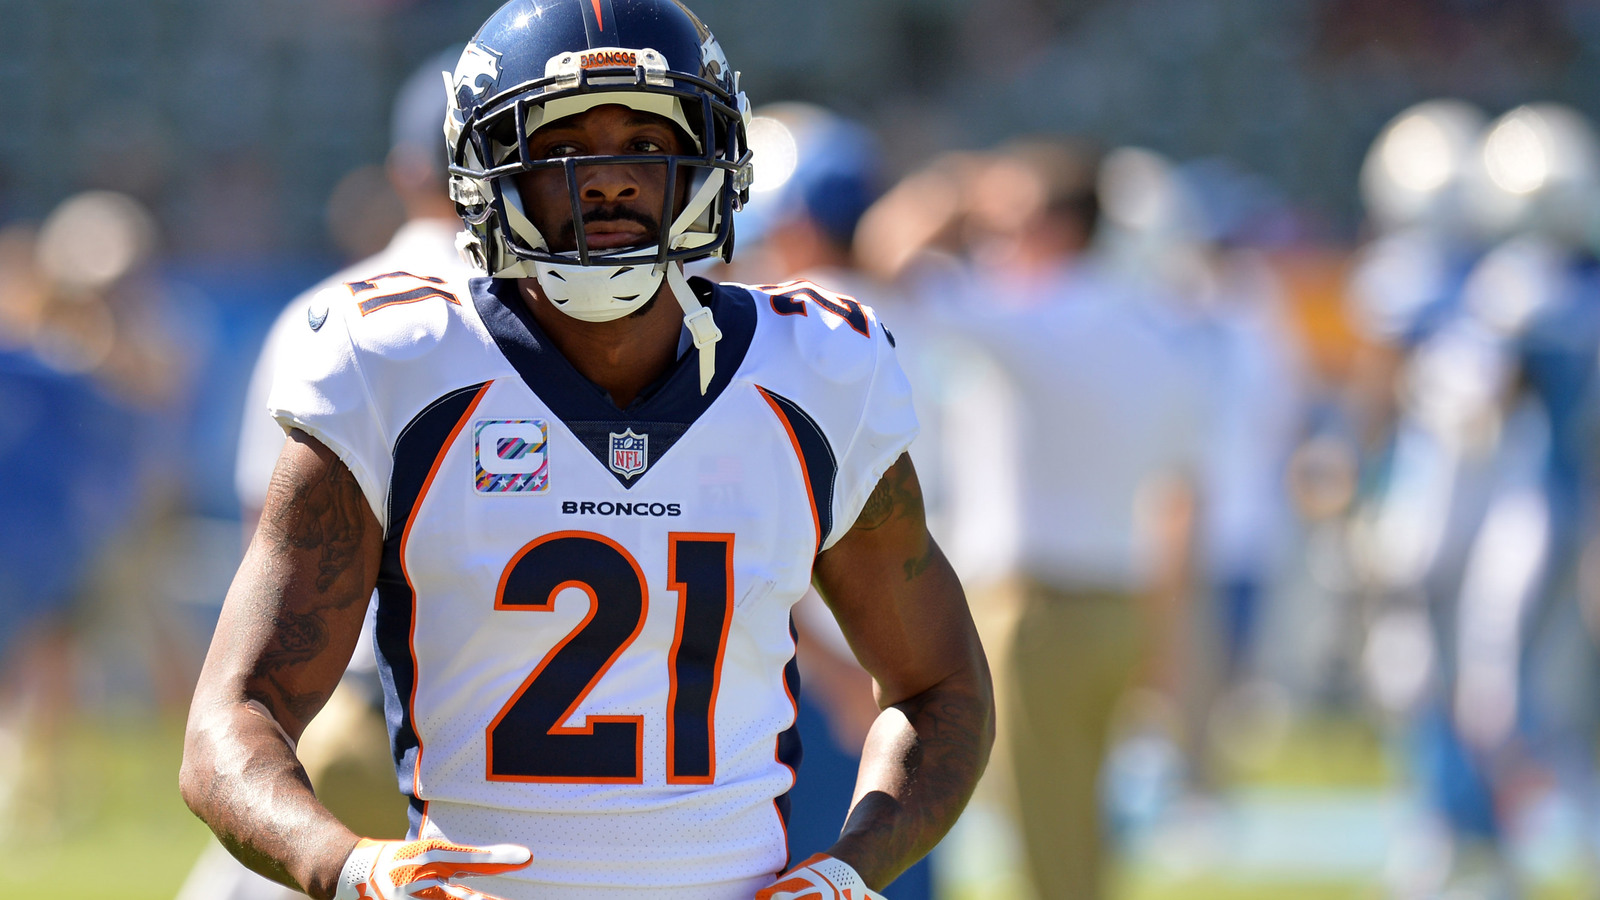 Aqib talib rejected trade to the 49ers for Knights landing fishing report